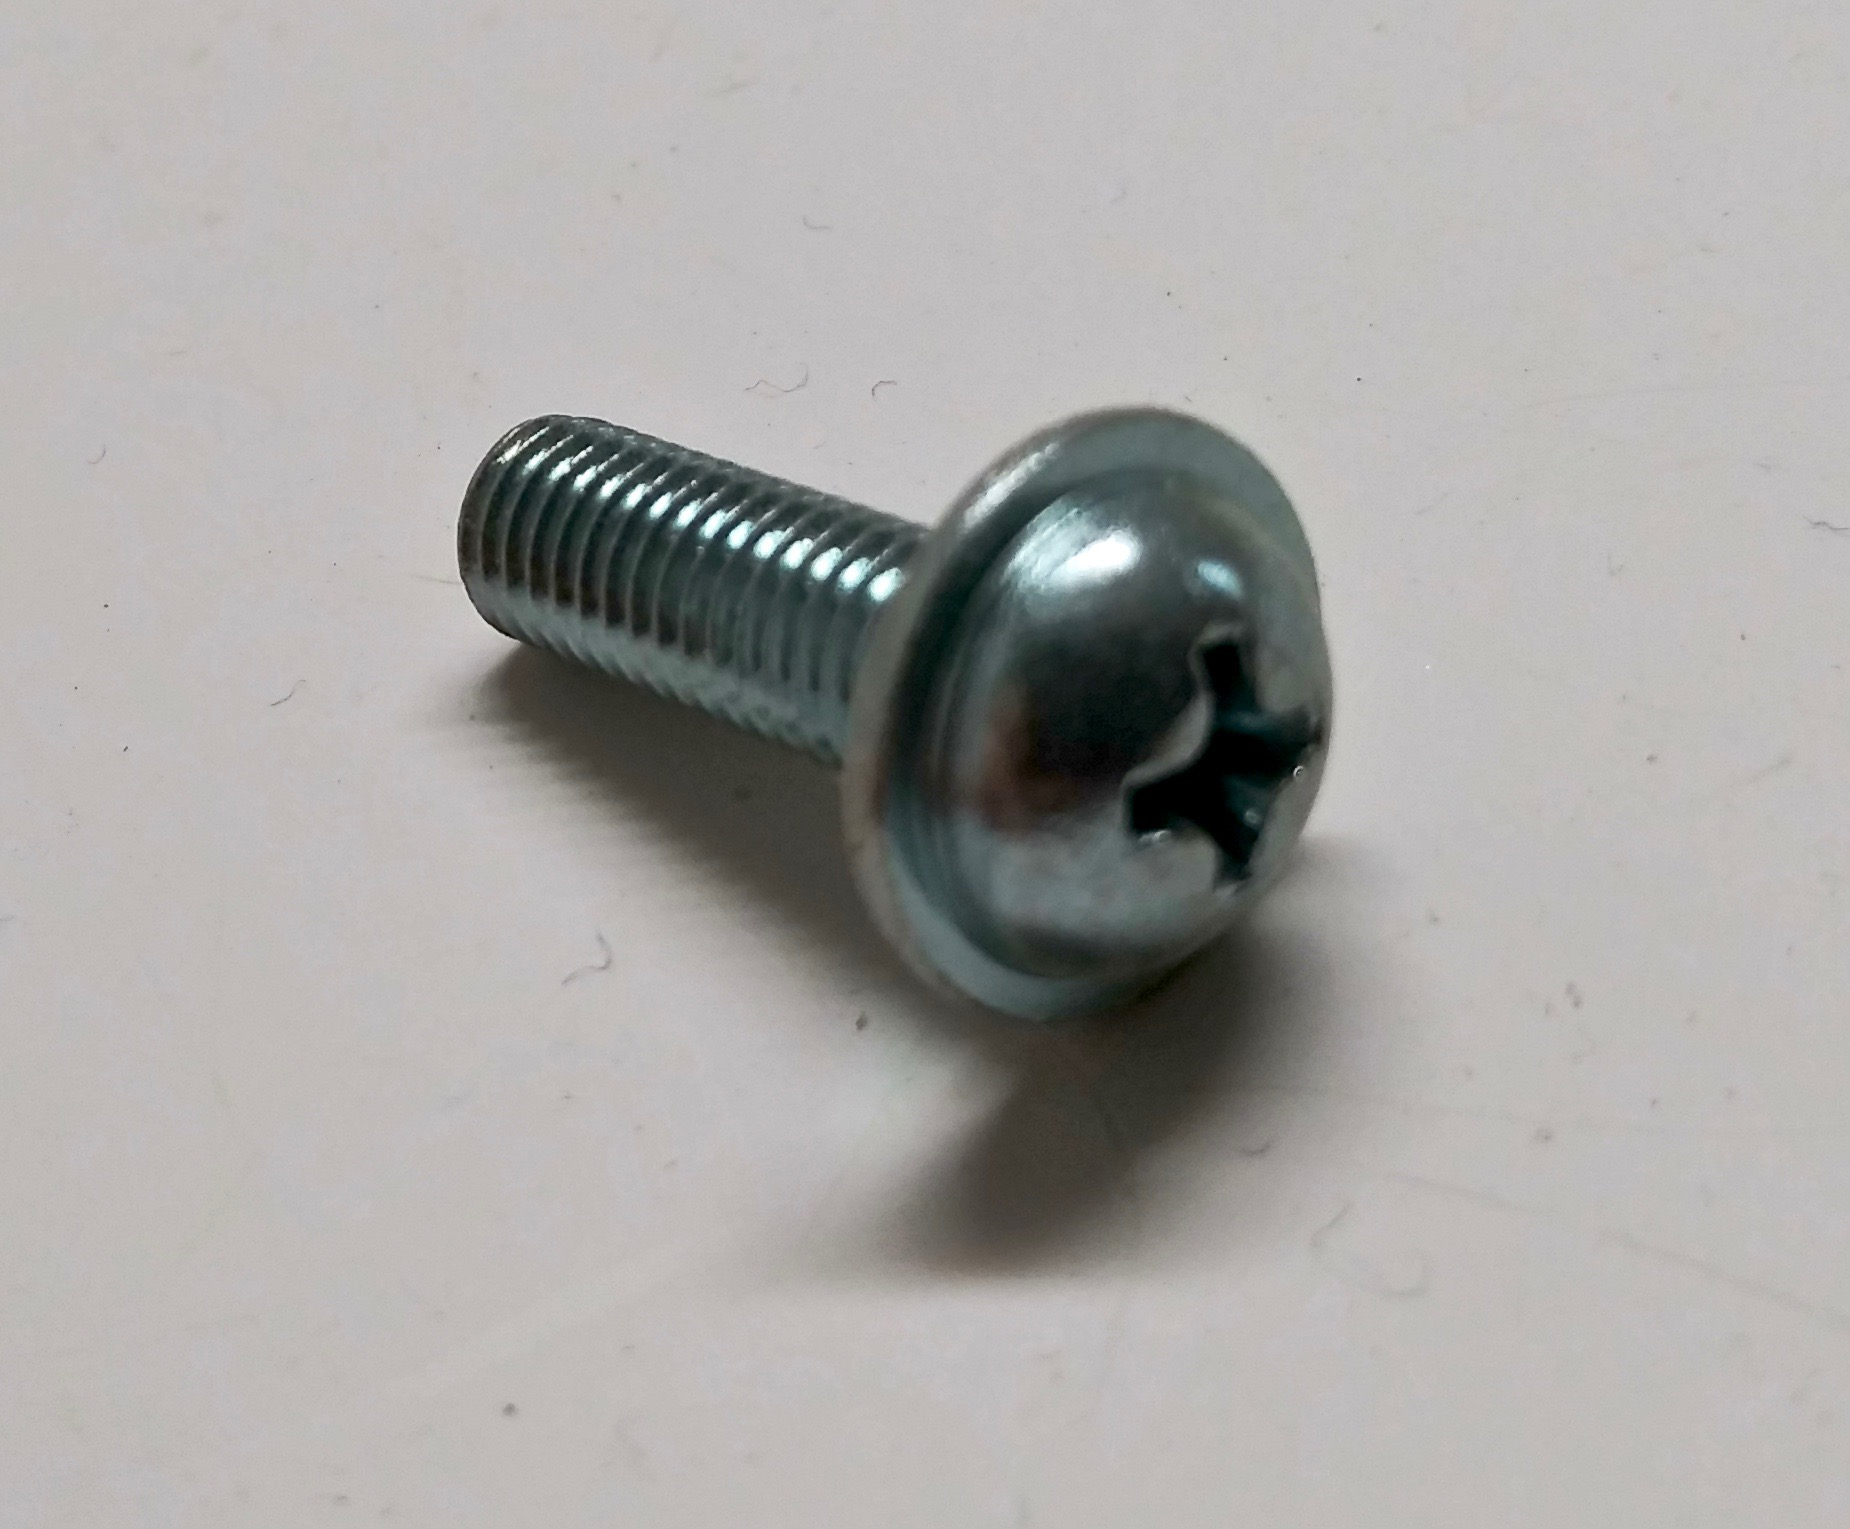 Tapping Screw With Washer